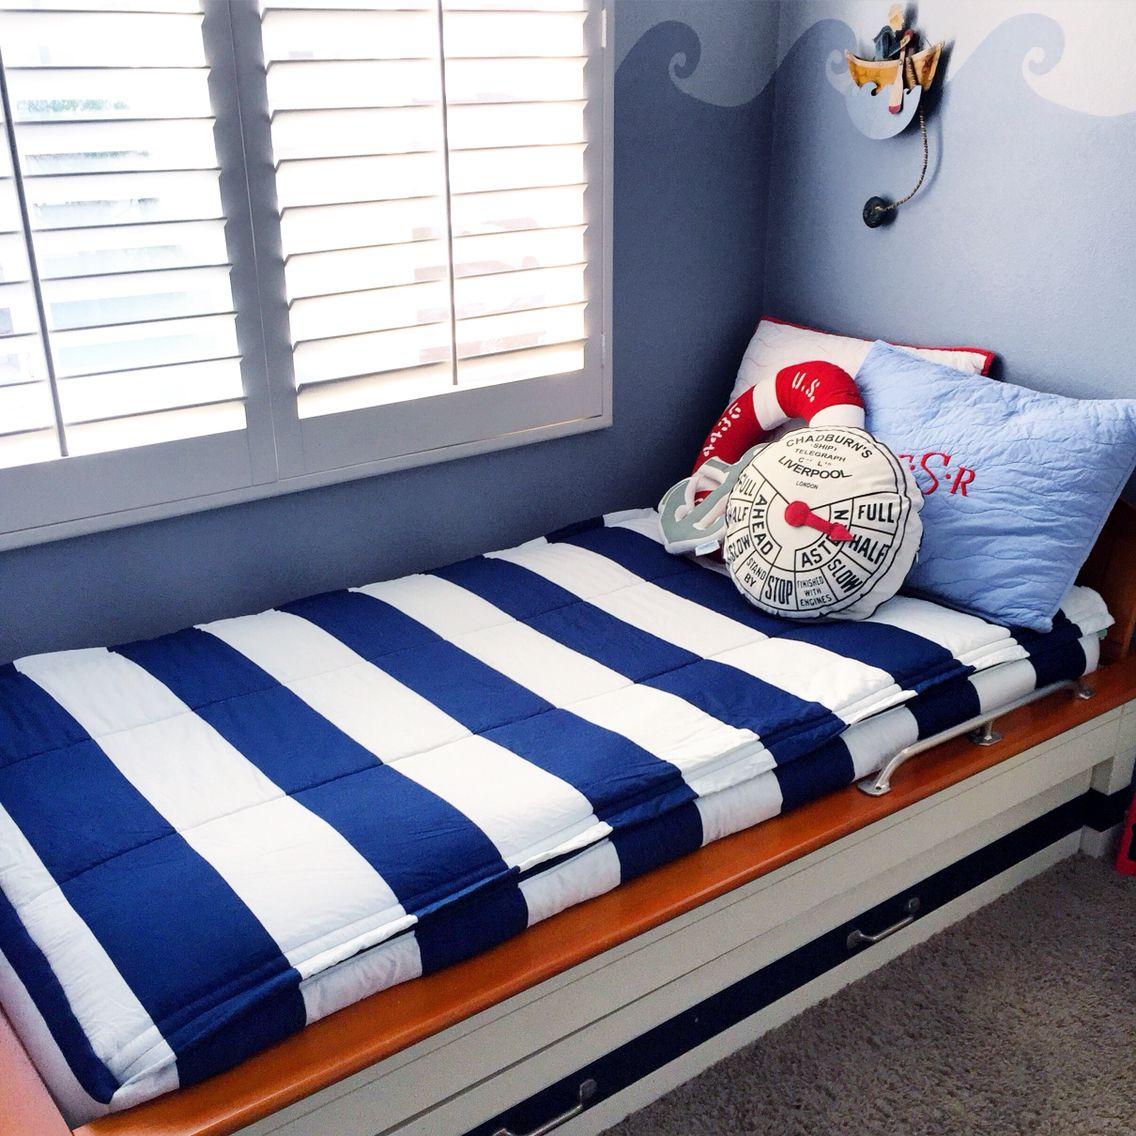 Beddy S Bedding Is Perfect For This Pottery Barn Boat Bed Love The Nautical Look Zipper Bedding Is The Only Way To Mak Beddys Bedding Zipper Bedding Boat Bed